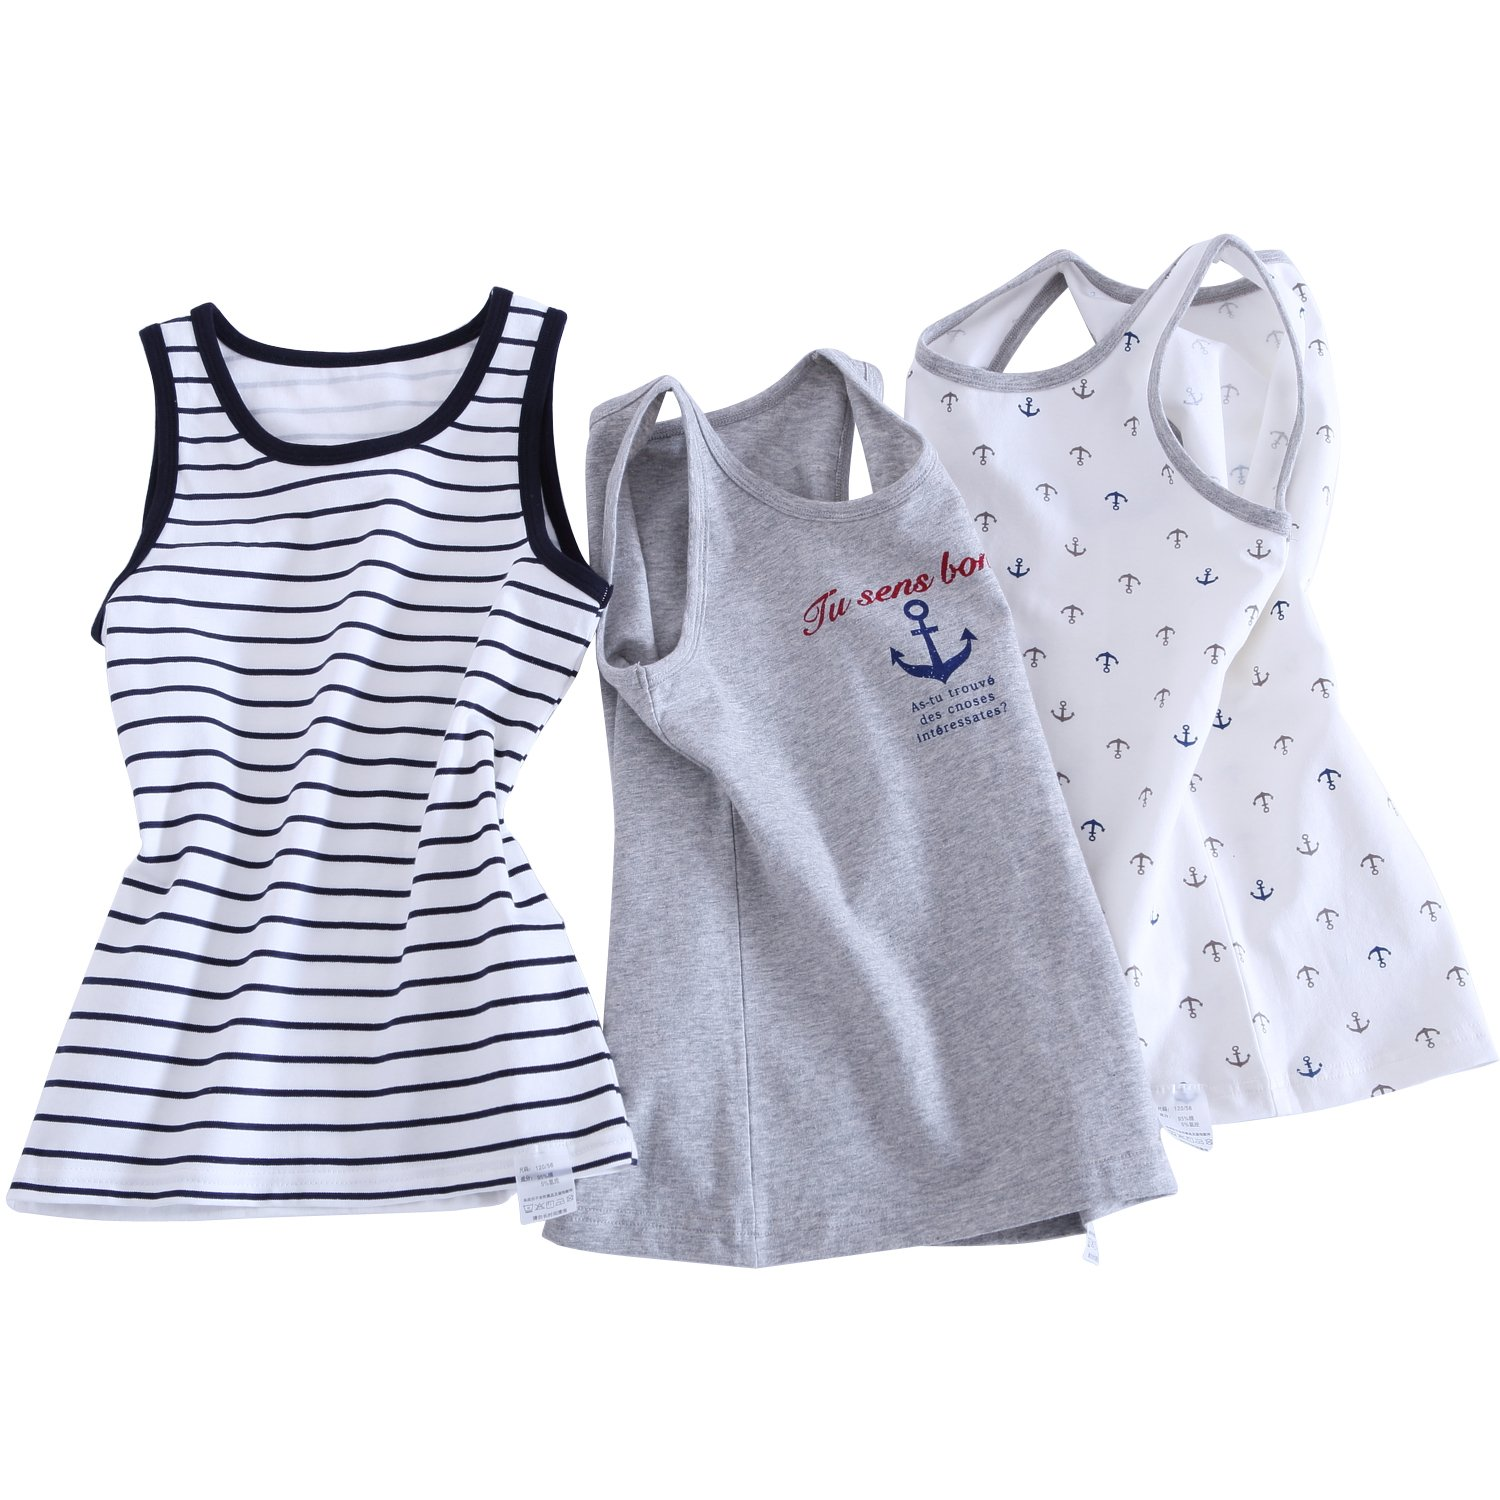 Tank Top for Baby Boys 3 Piece Pack Muscle T-shirt (5T)